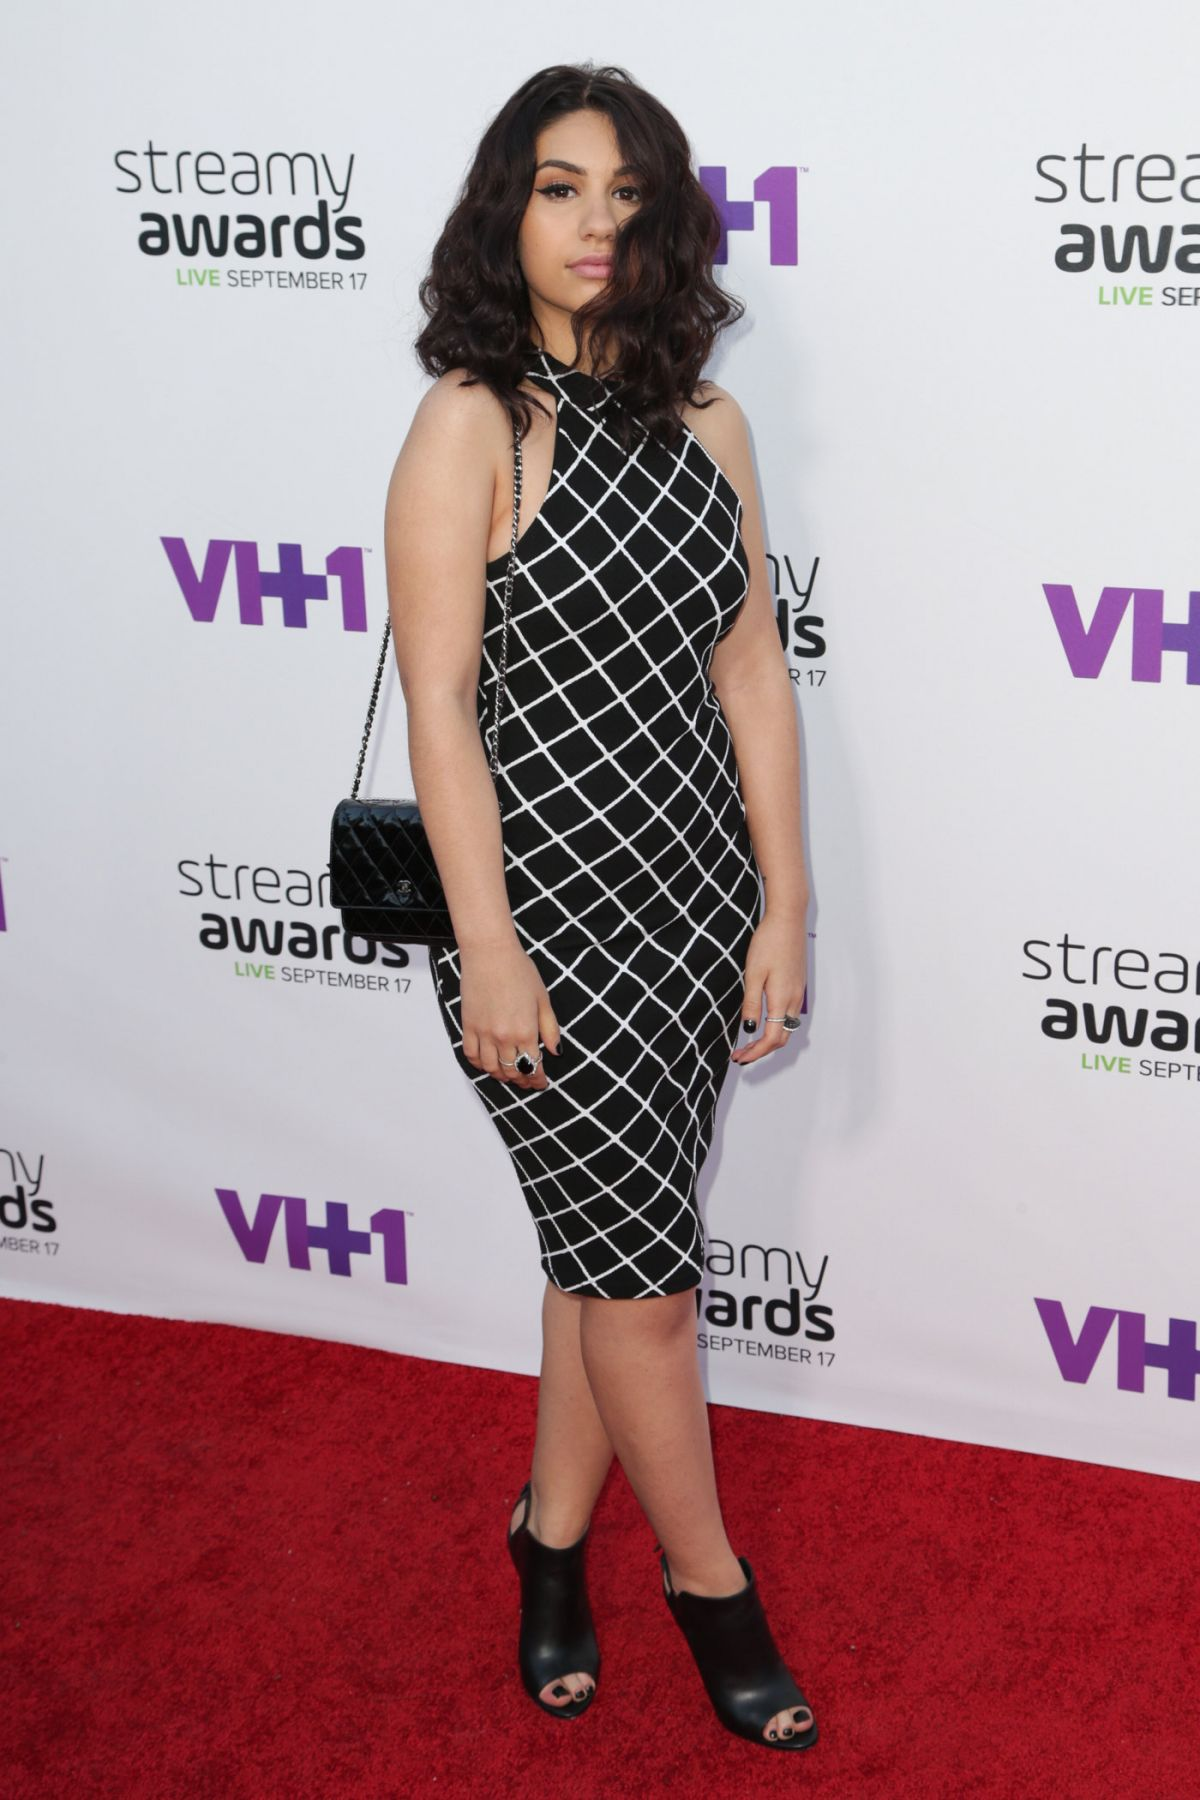 ALESSIA CARA at 2015 Streamy Awards in Los Angeles 09/17/2015